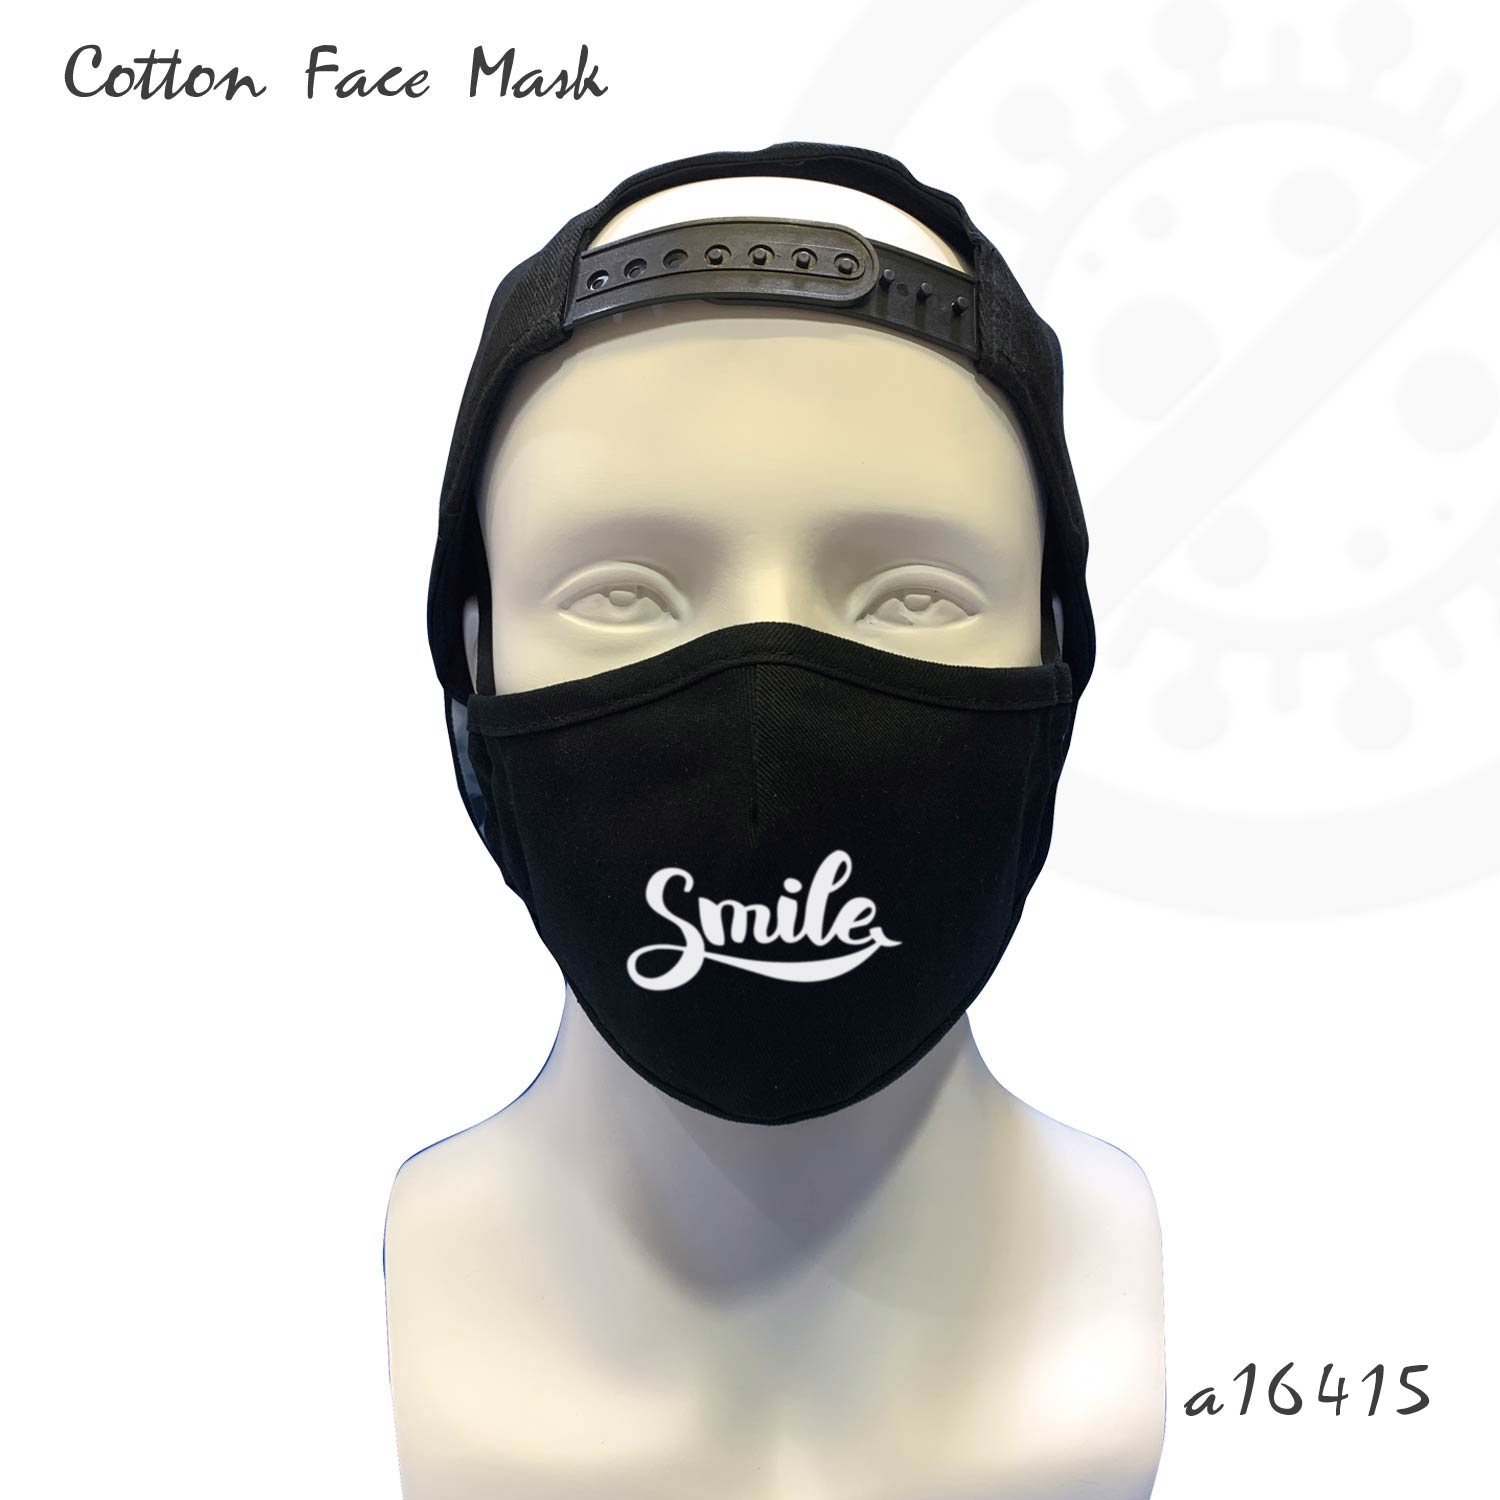 Cotton Face Covering with smiling print